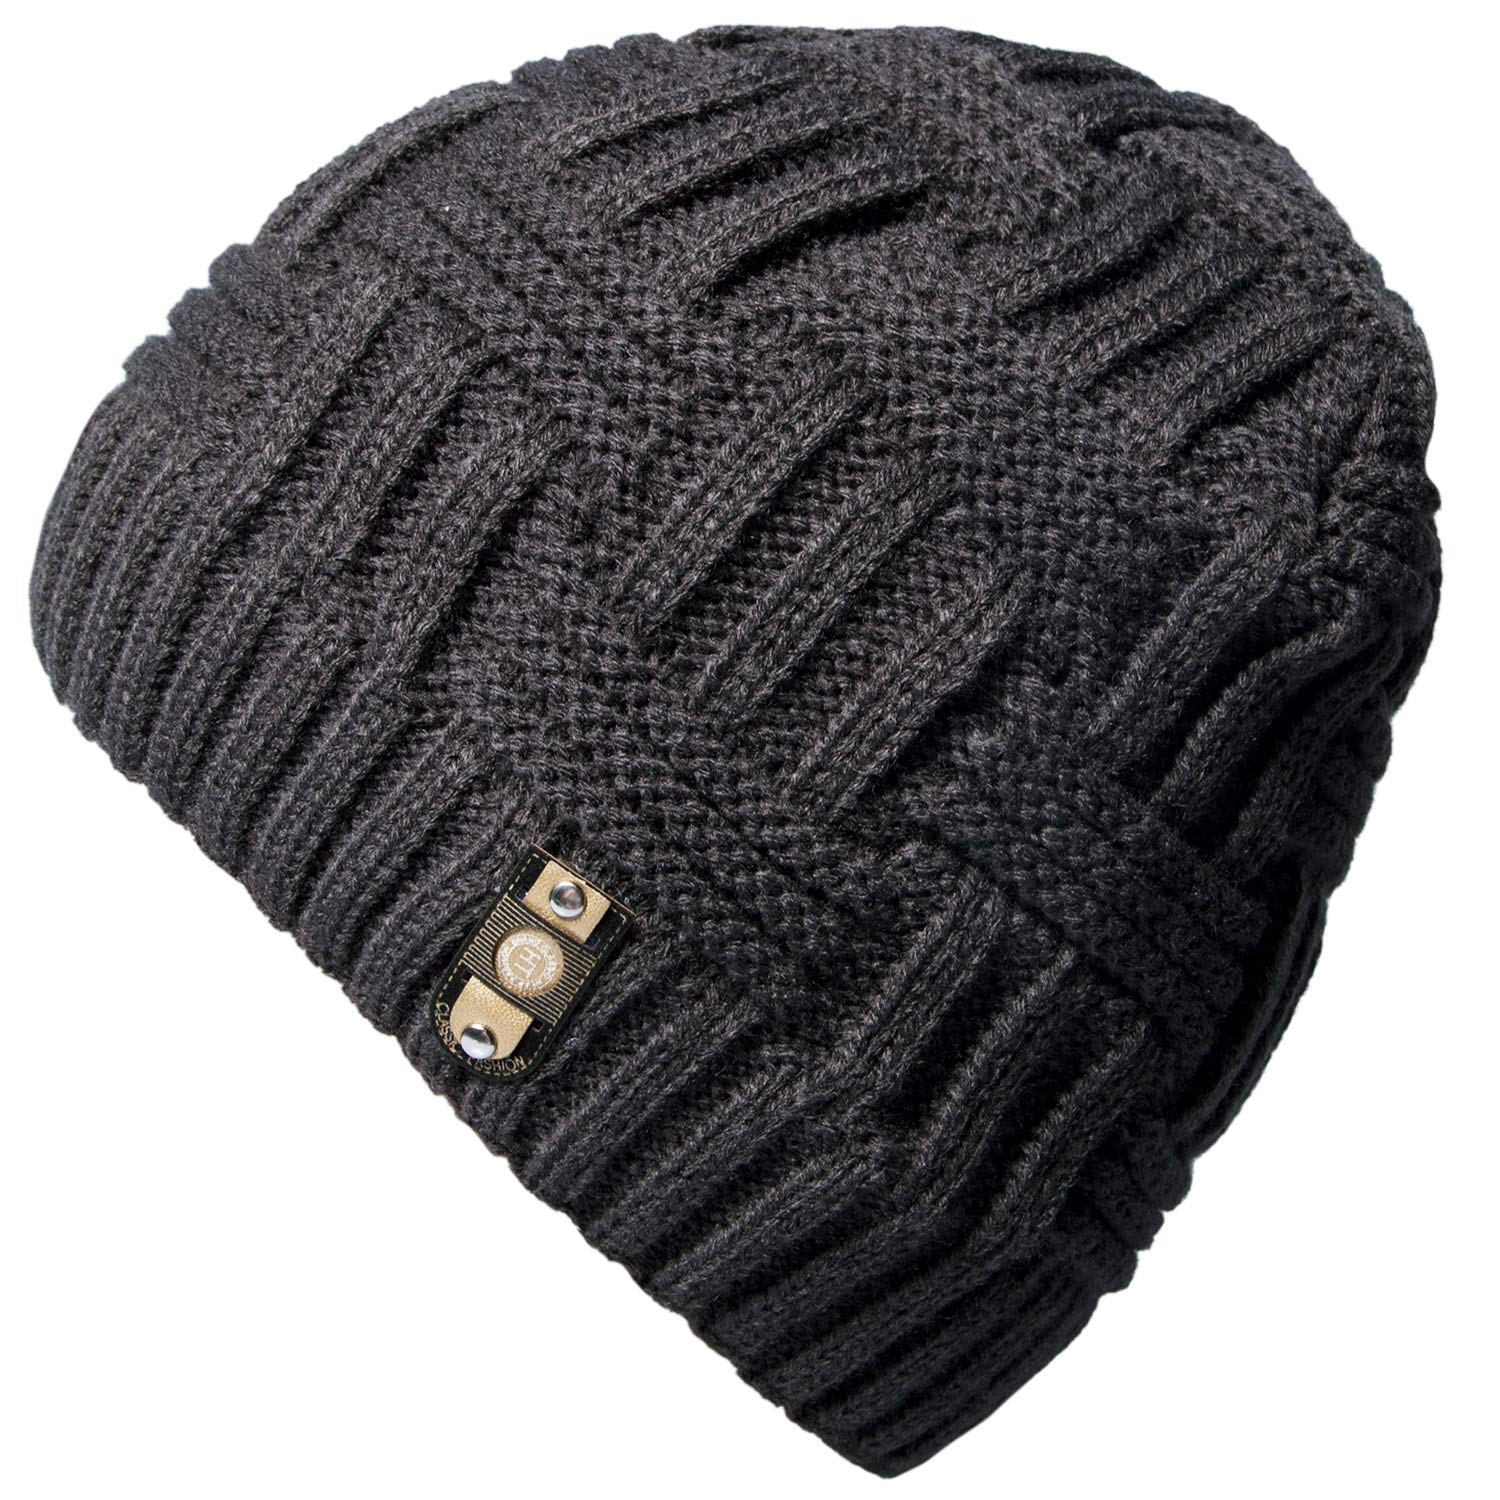 Loritta Mens Winter Warm Knitting Hats Wool Baggy Slouchy Beanie Hat Skull Cap CLT-023-1